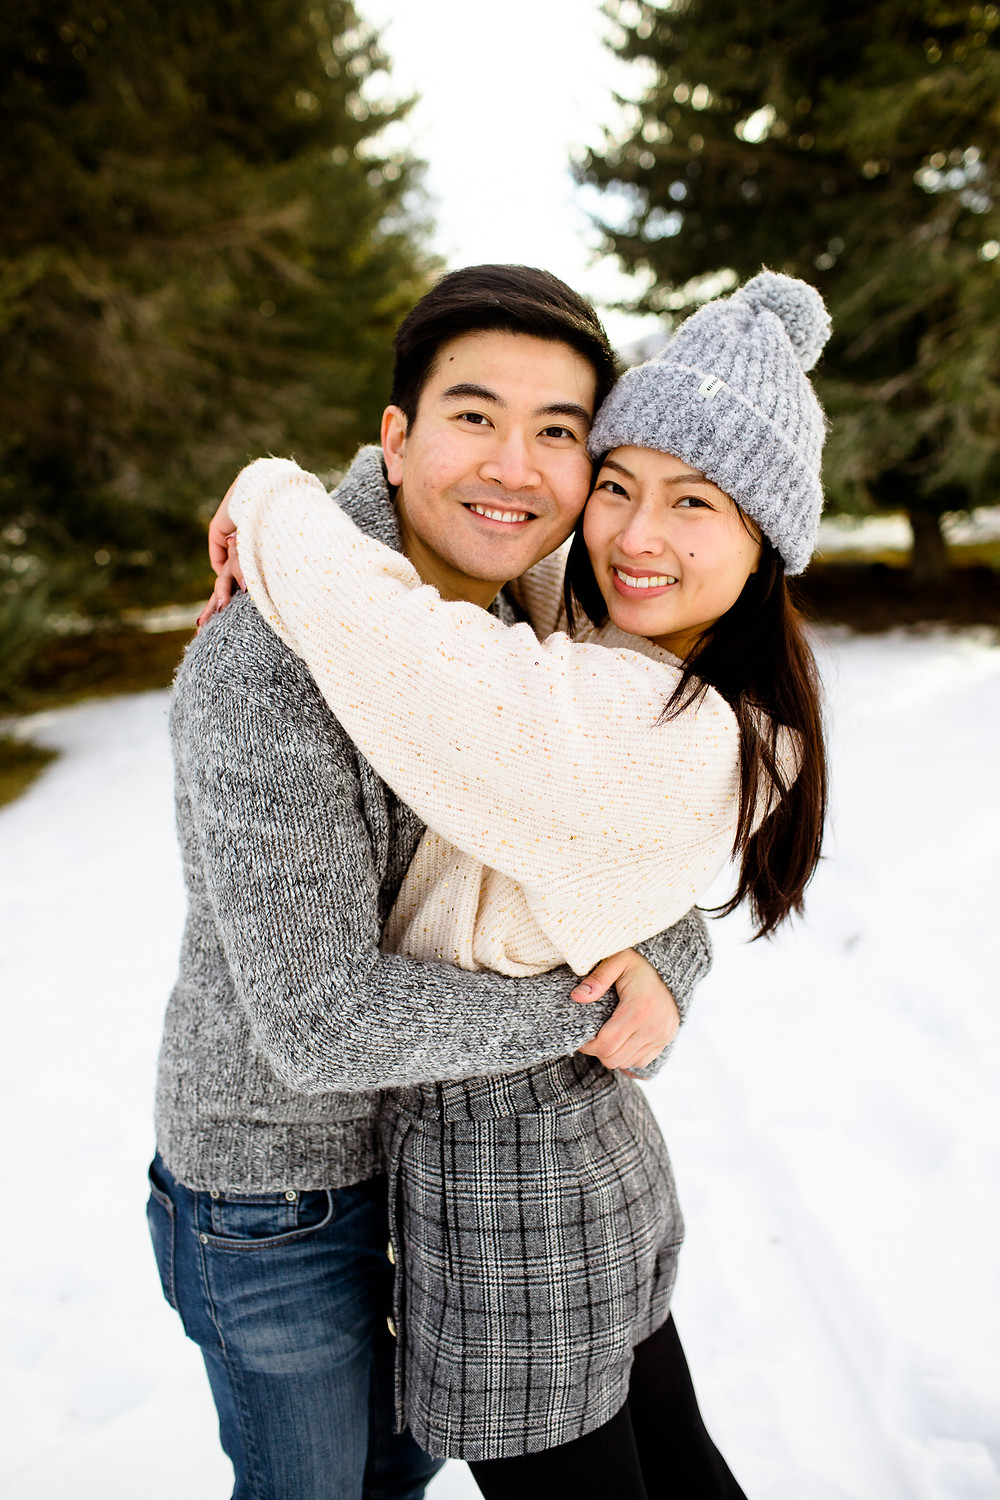 man and woman smiling at the camera in front of snowy pine trees